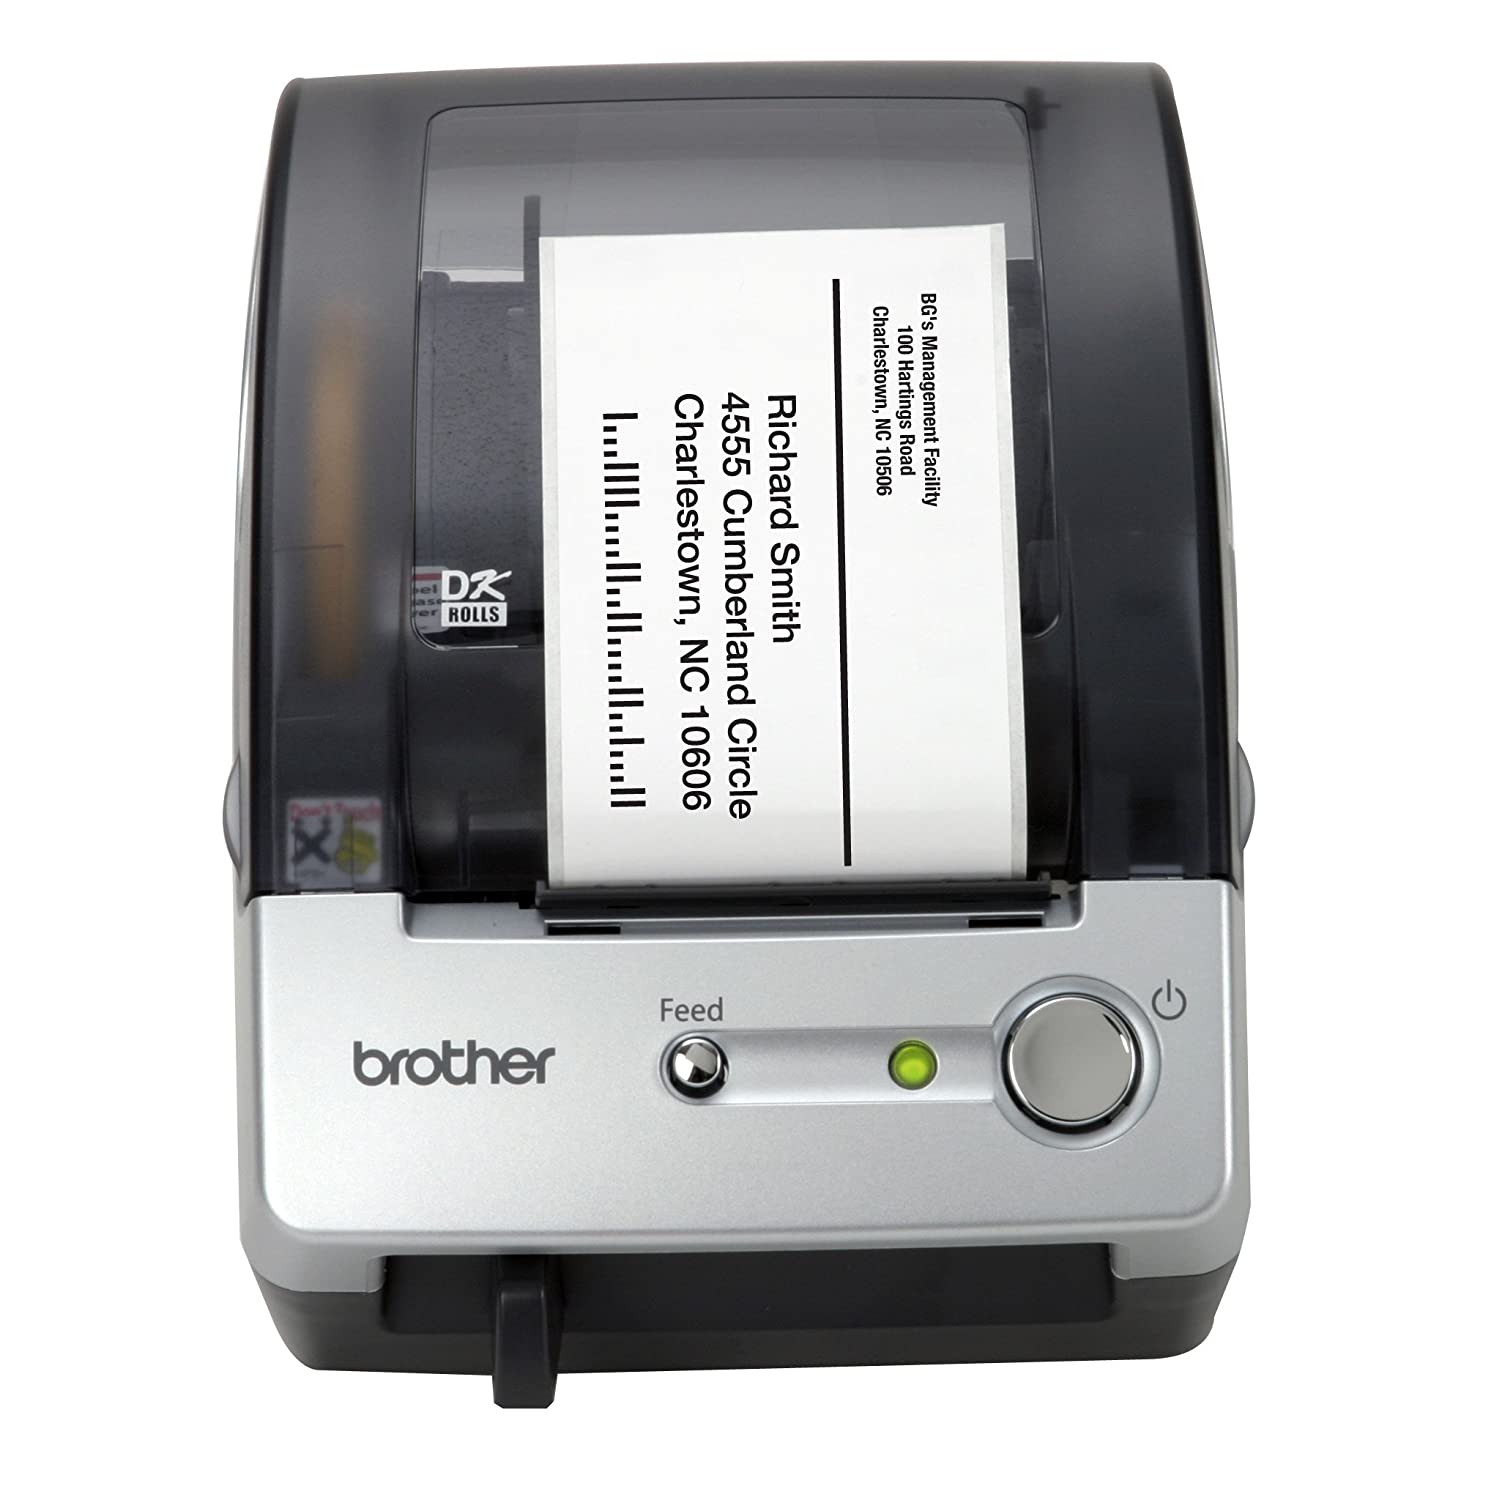 BROTHER PTOUCH QL500 DRIVER FOR MAC DOWNLOAD